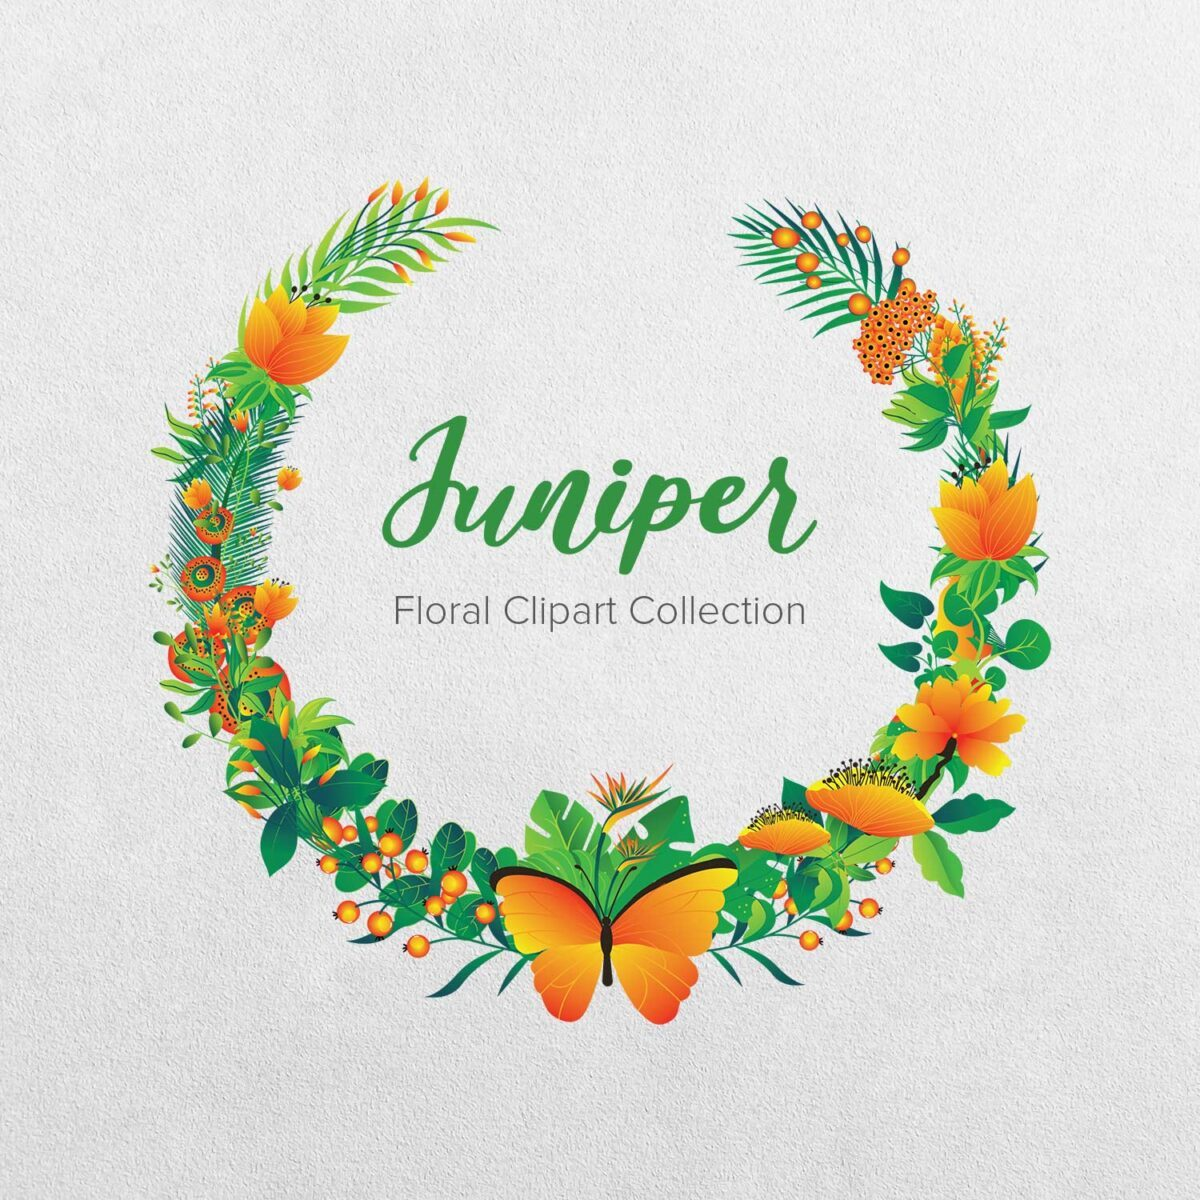 Juniper Floral Clipart Collection